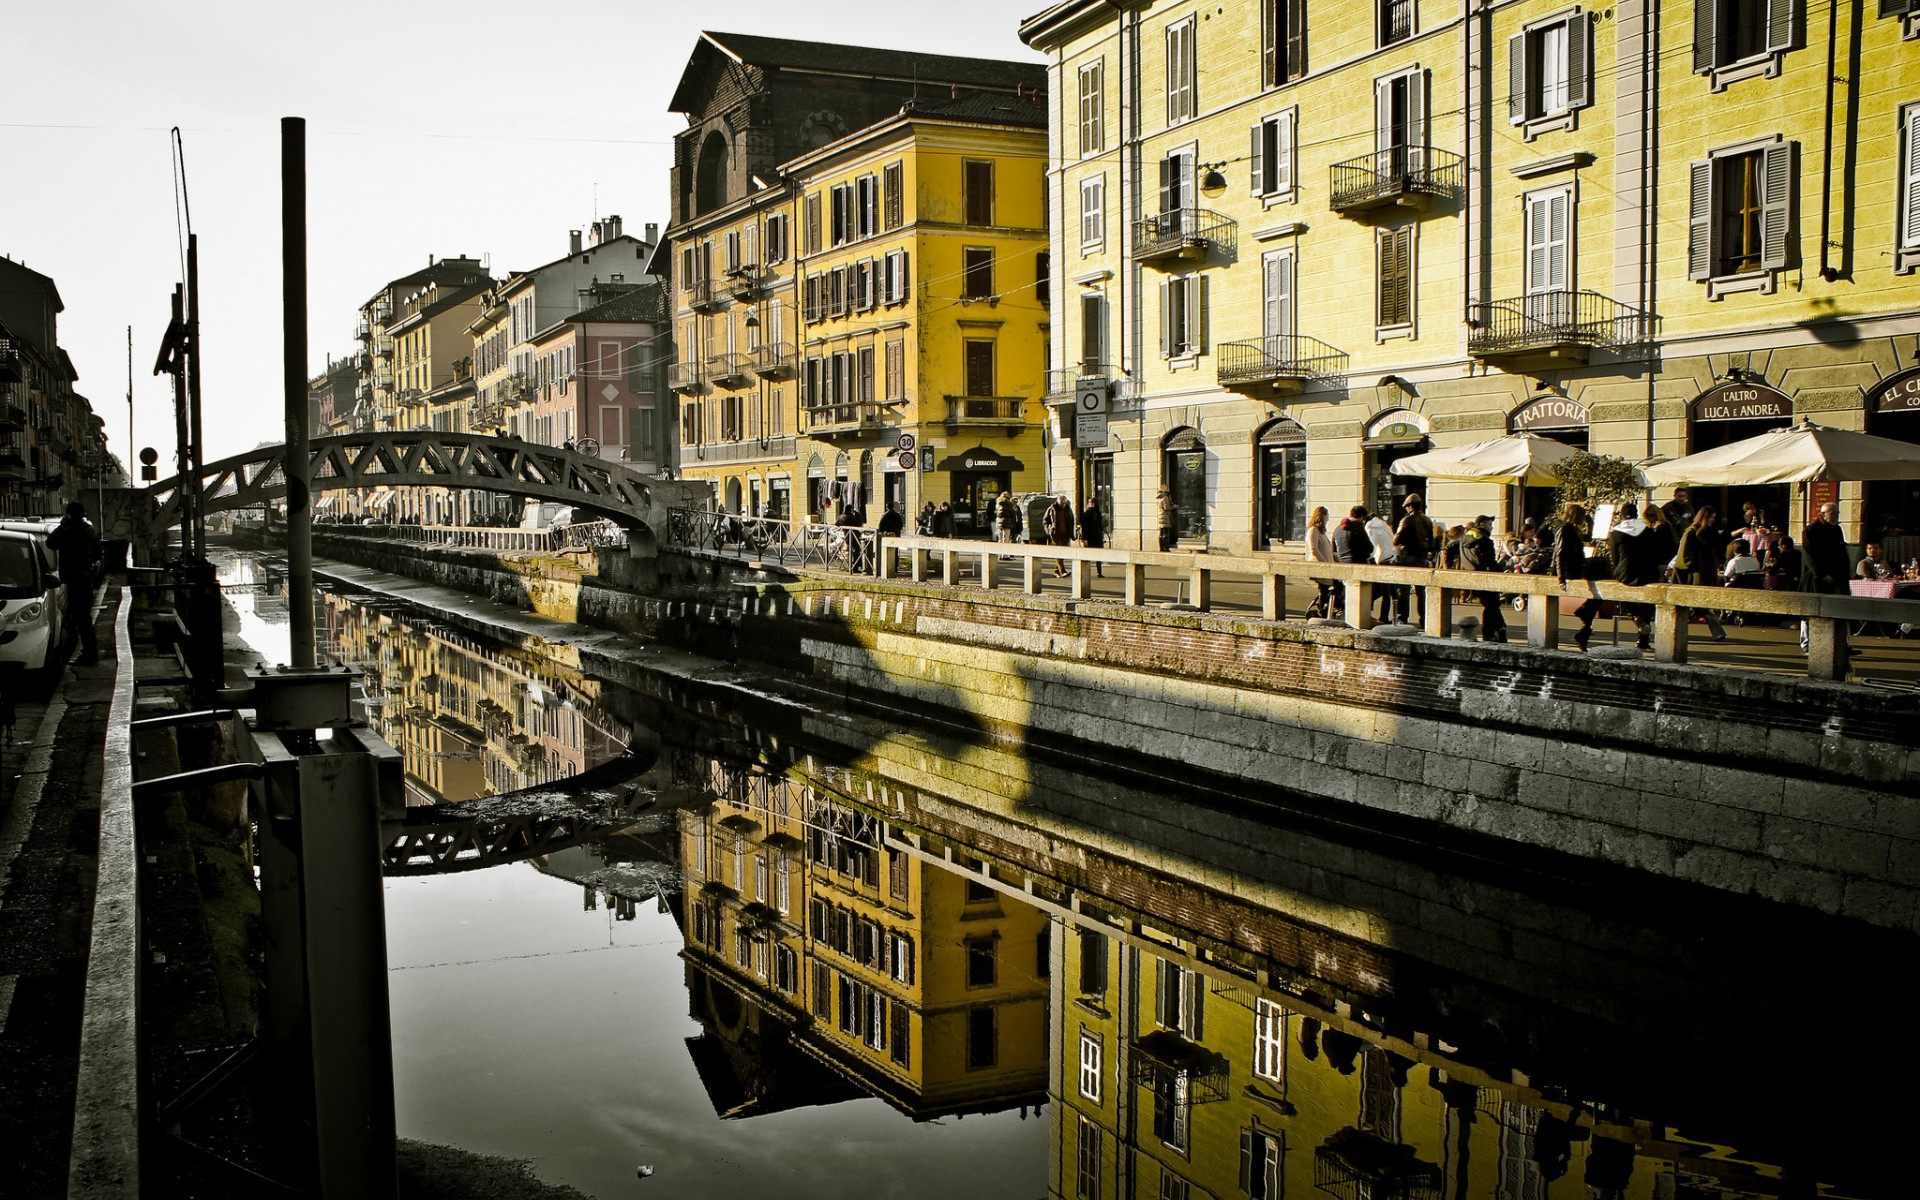 milan italy canal architecture buildings